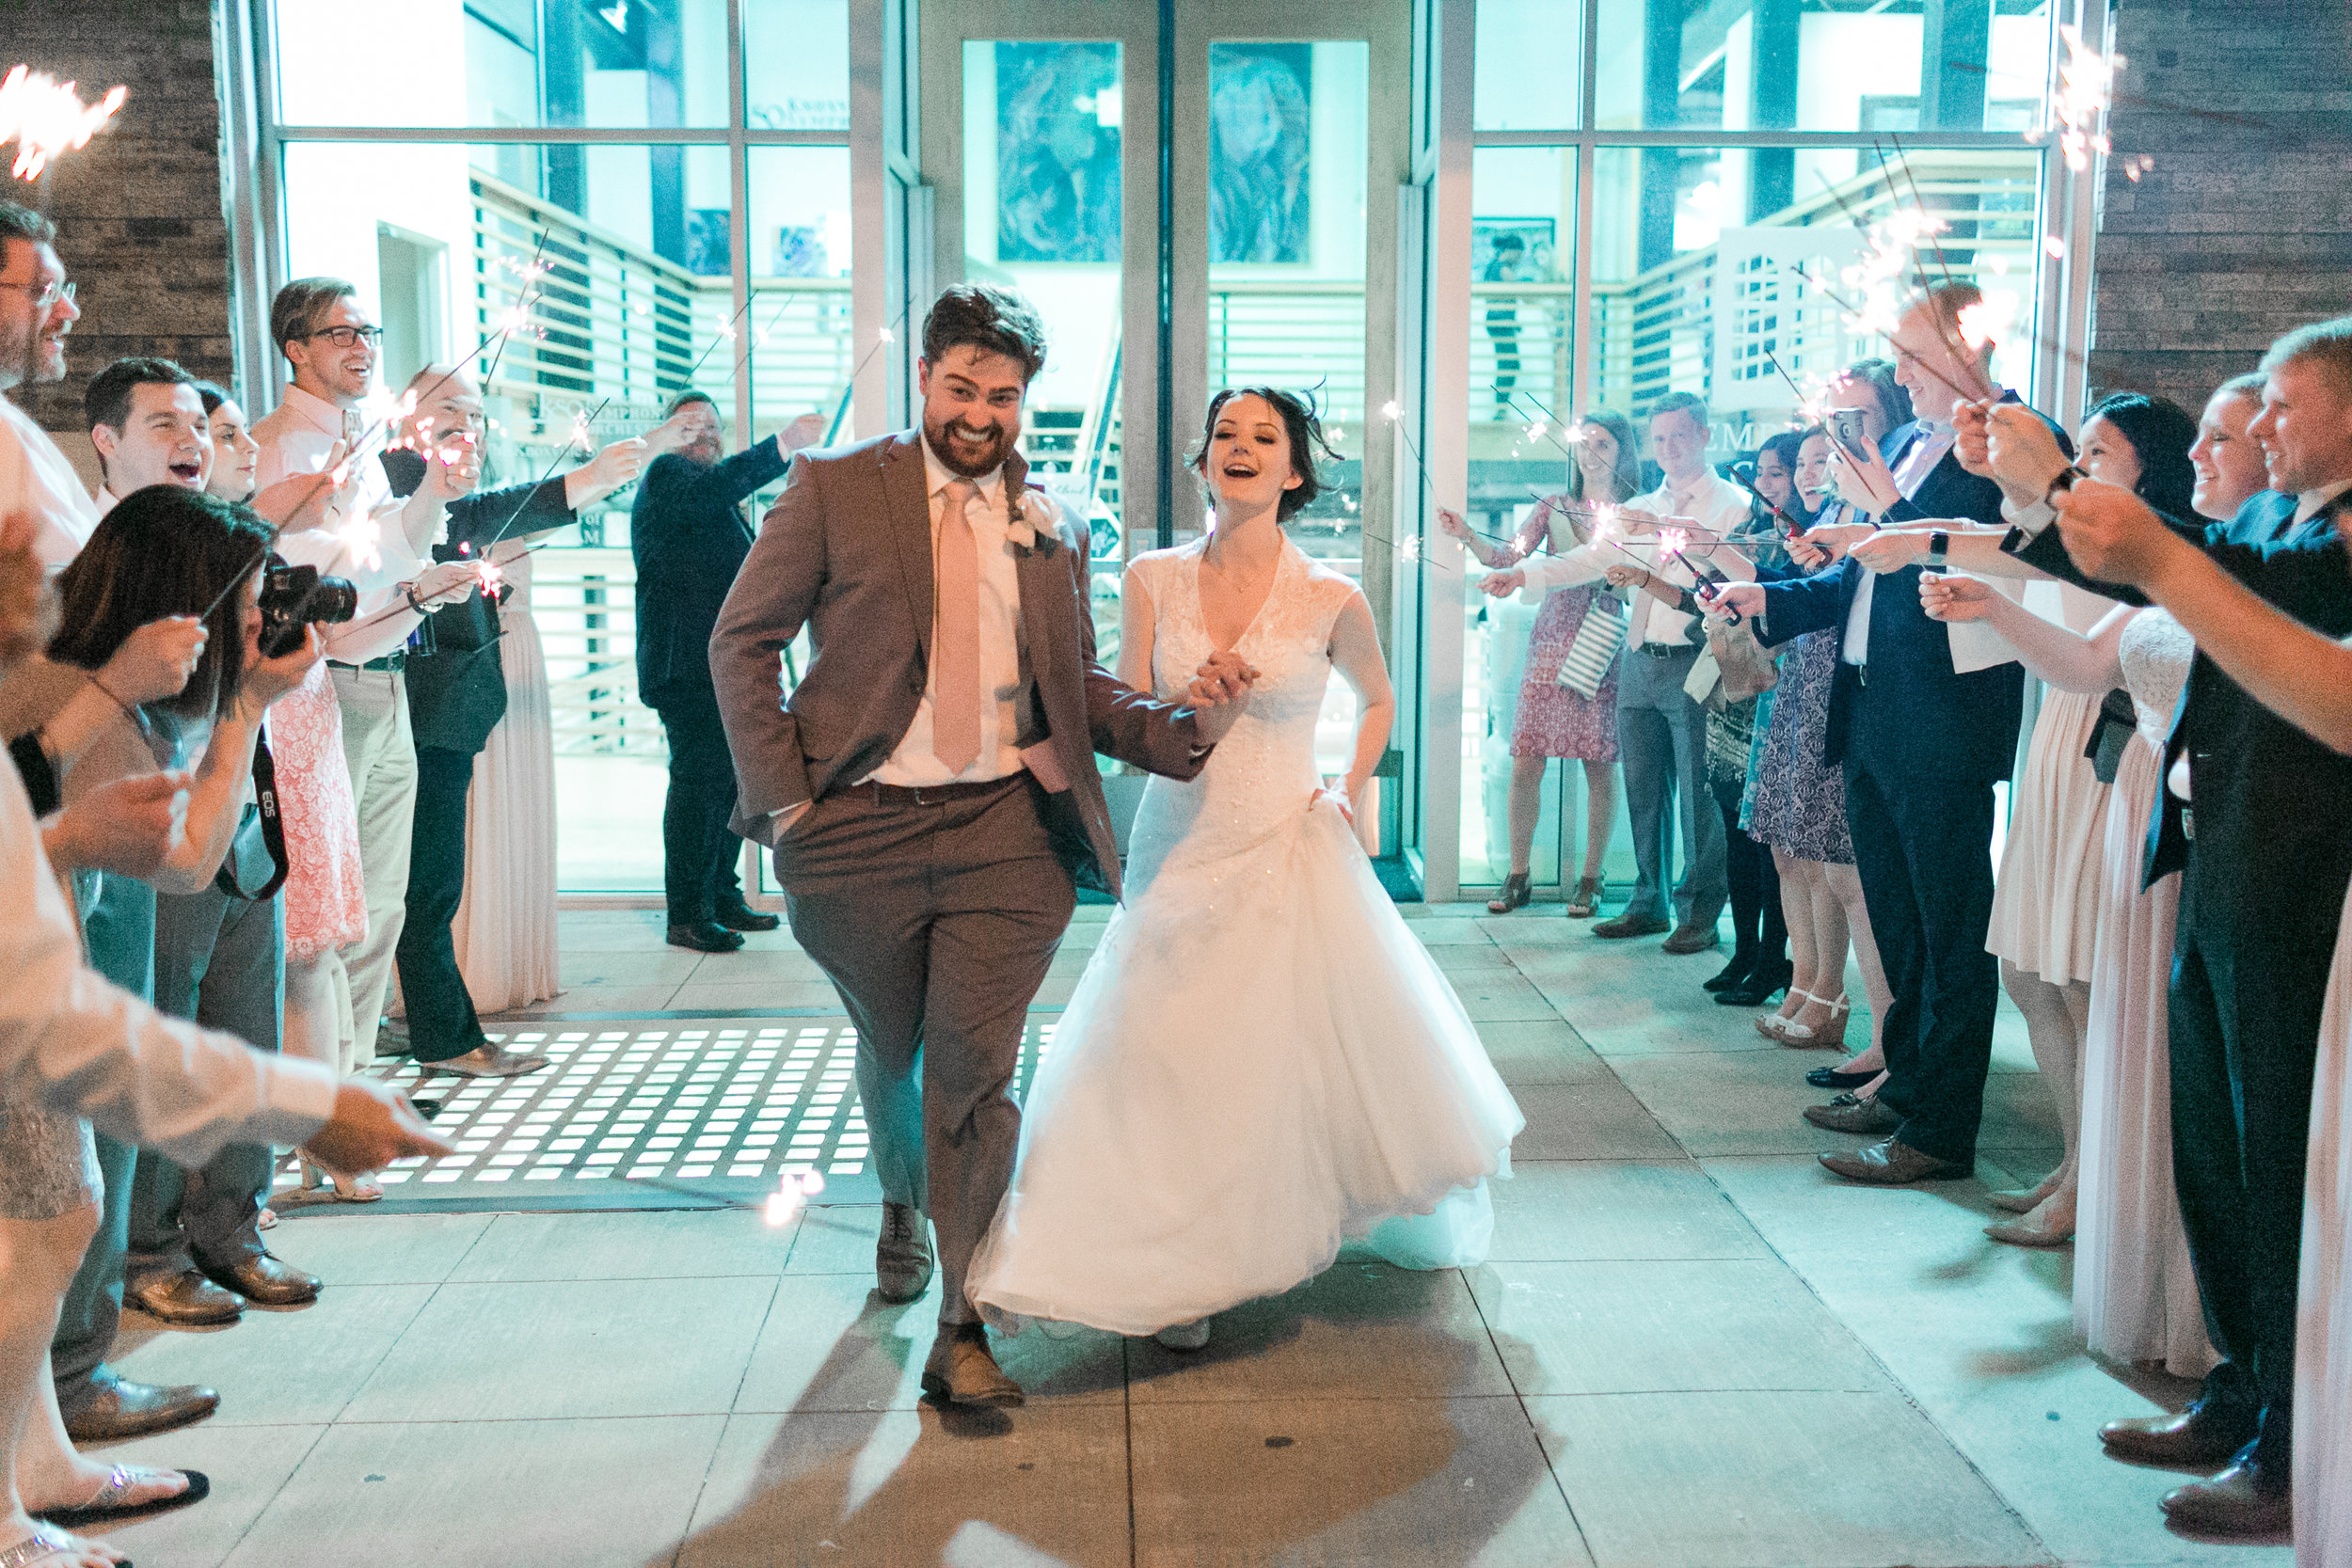 Art Gallery Wedding - The Emporium Center Wedding - Matthew Davidson Photography -- Wedding Blog - The Overwhelmed Bride